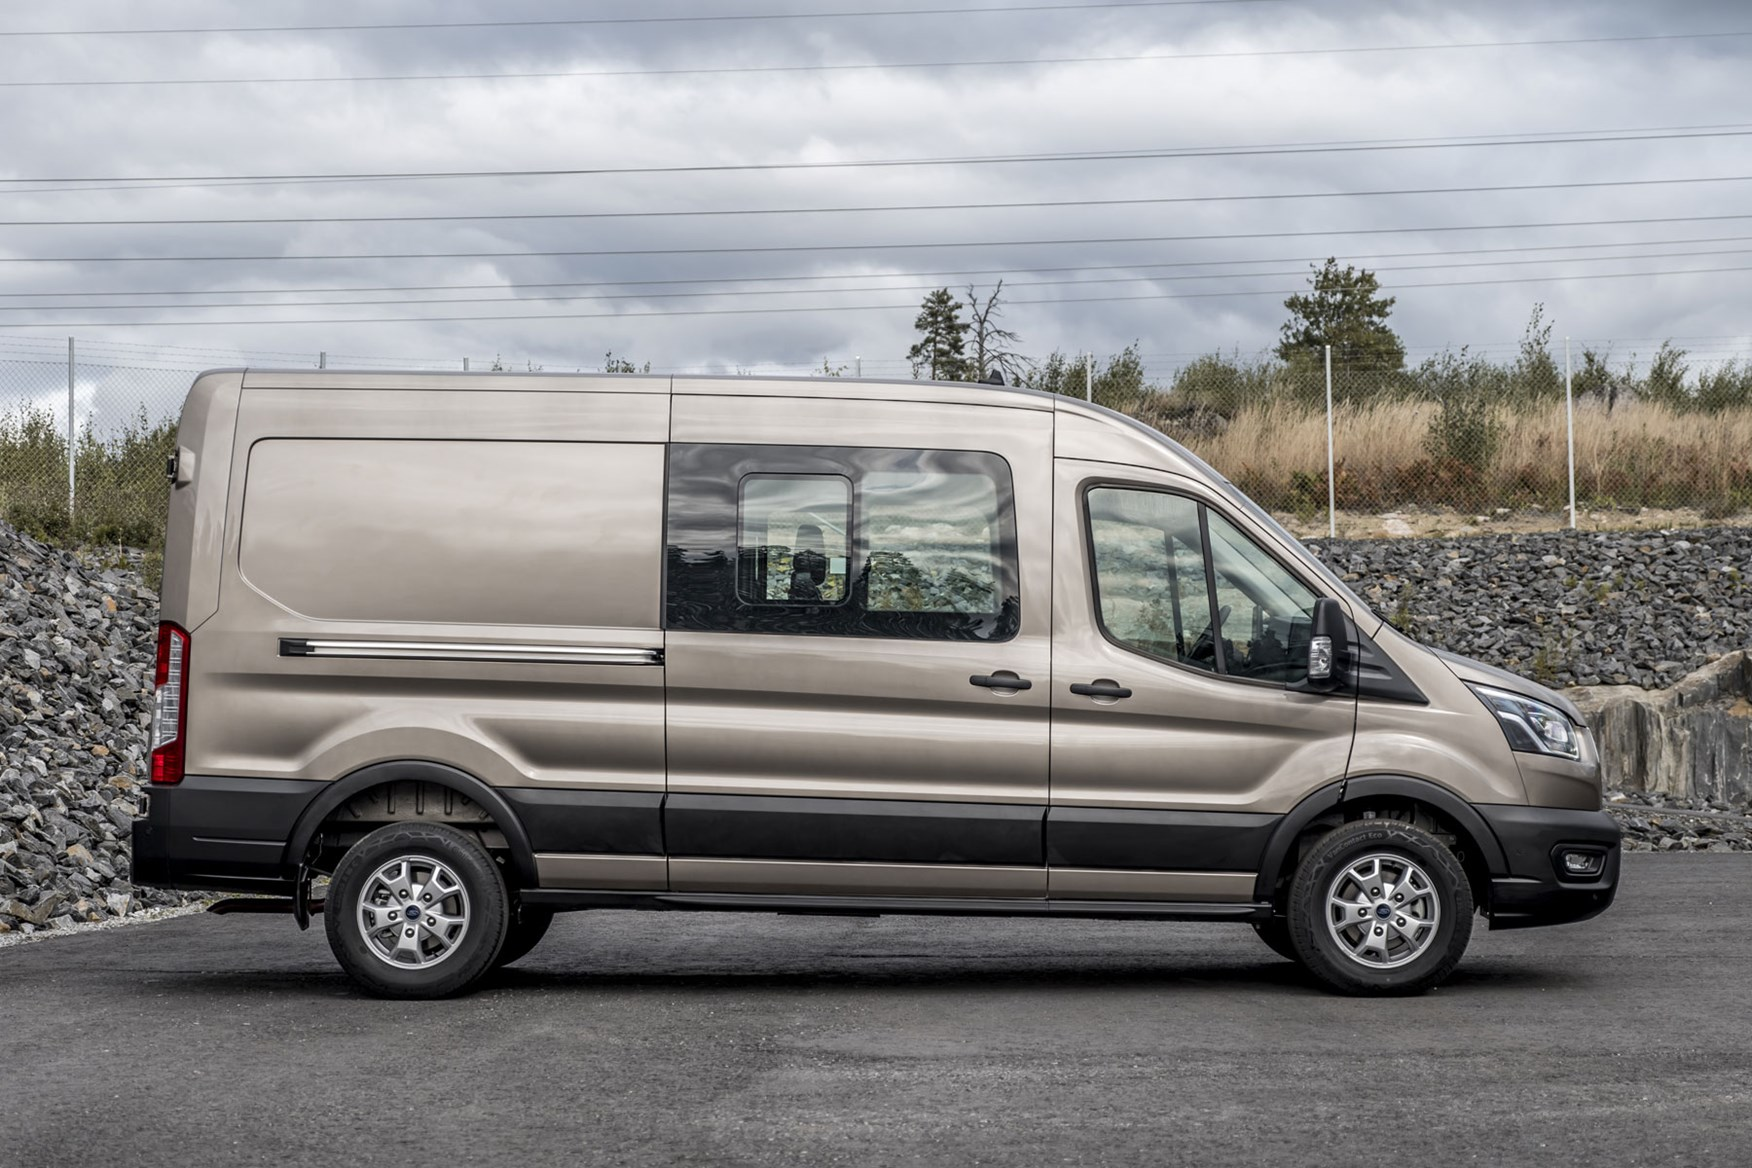 Ford Transit dimensions - 2019 facelift model, side view, DCiV